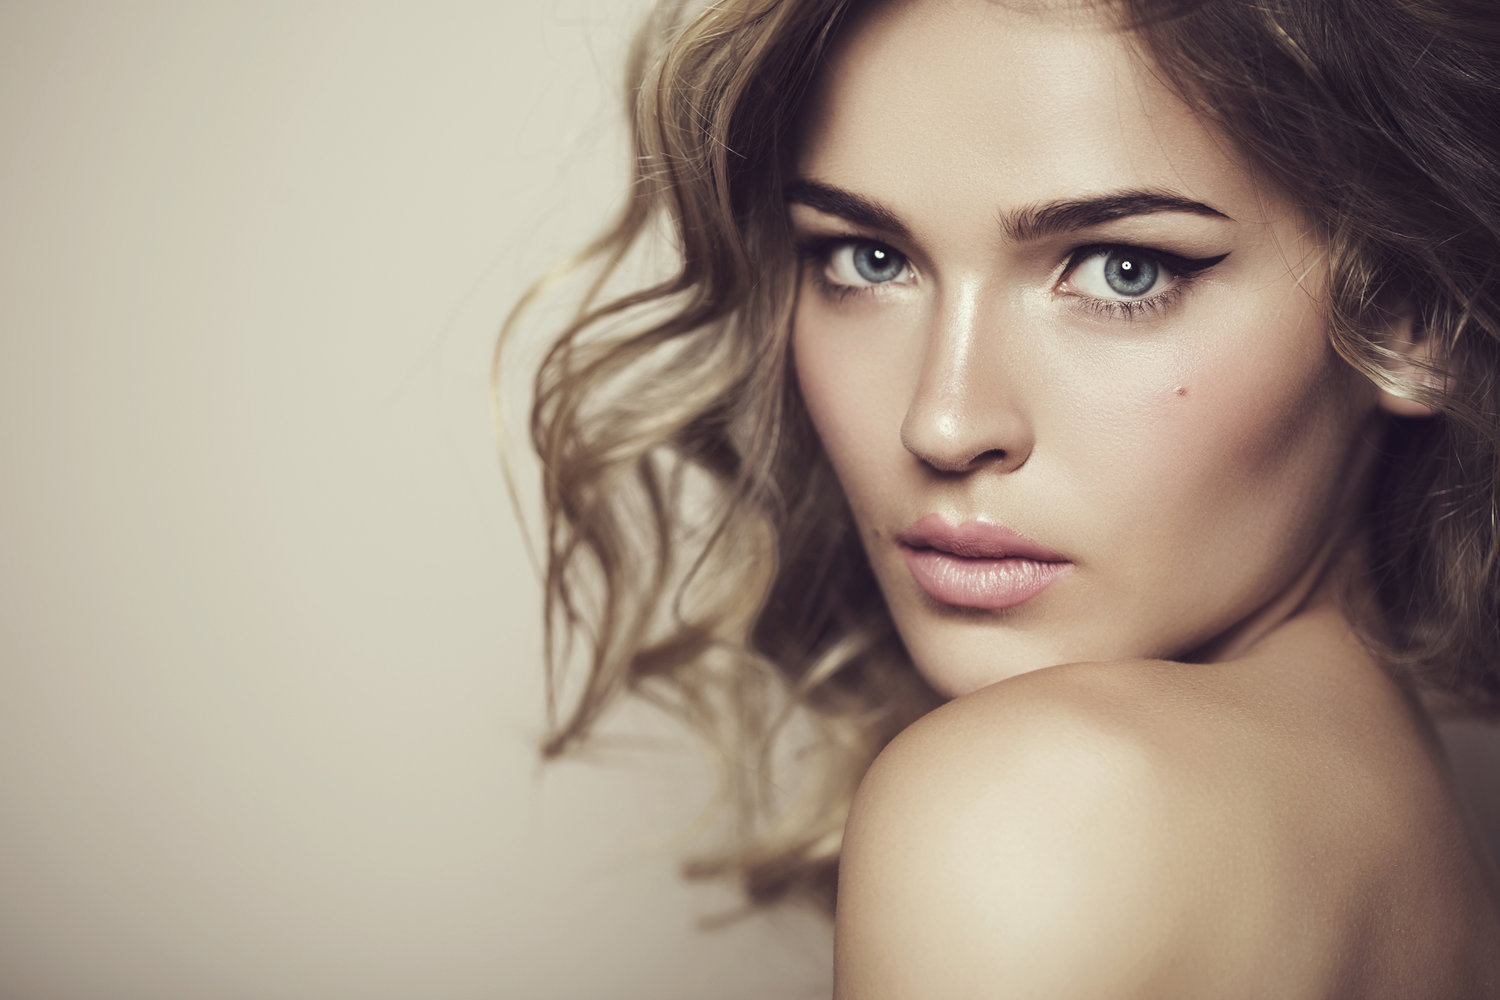 Beautiful woman with professional makeup and hair